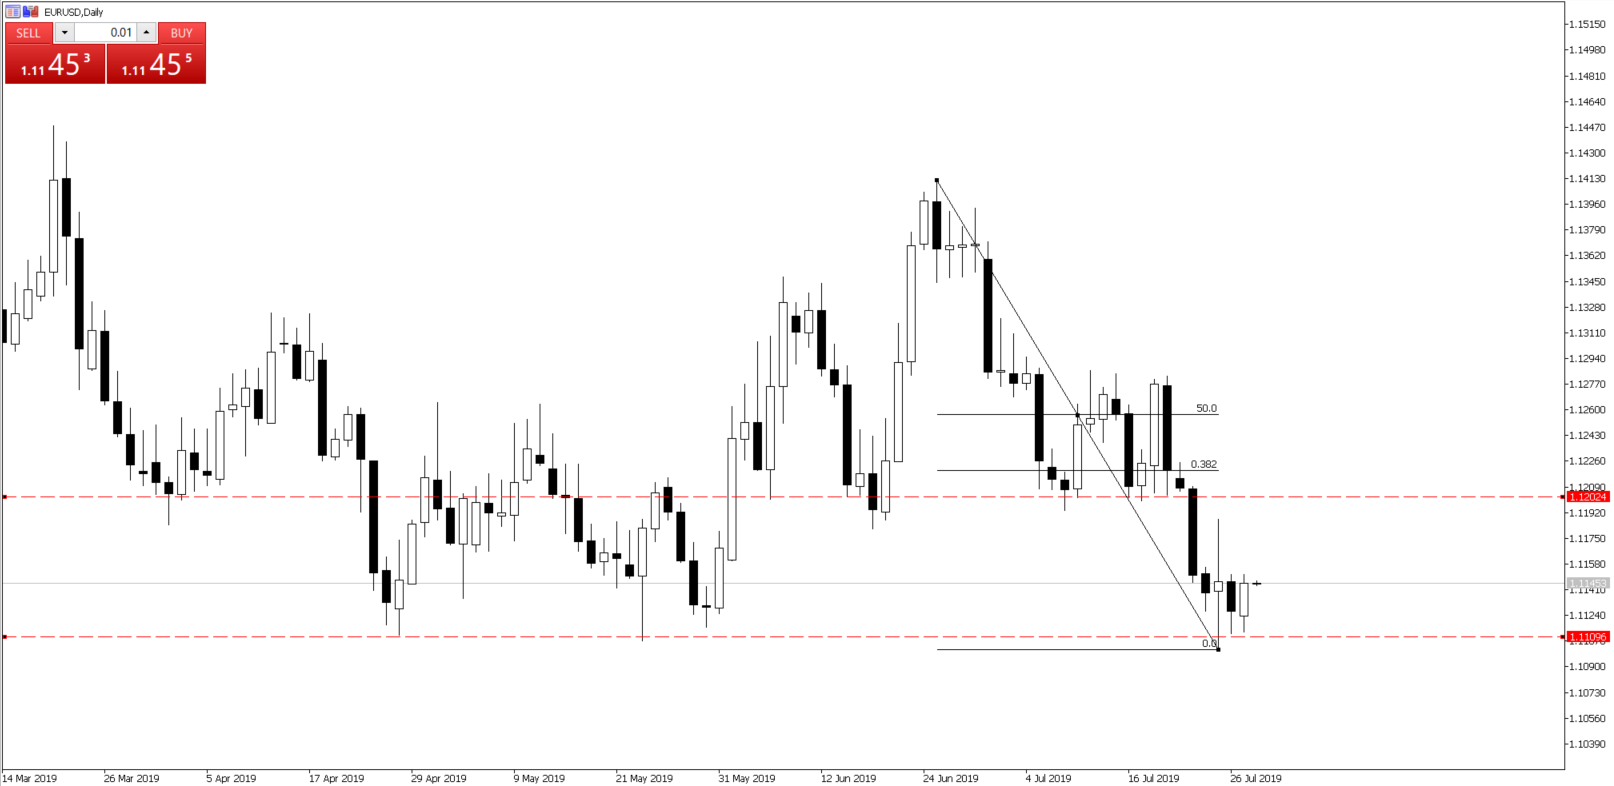 Chart of the Day - July 30, 2019 - EURUSD daily